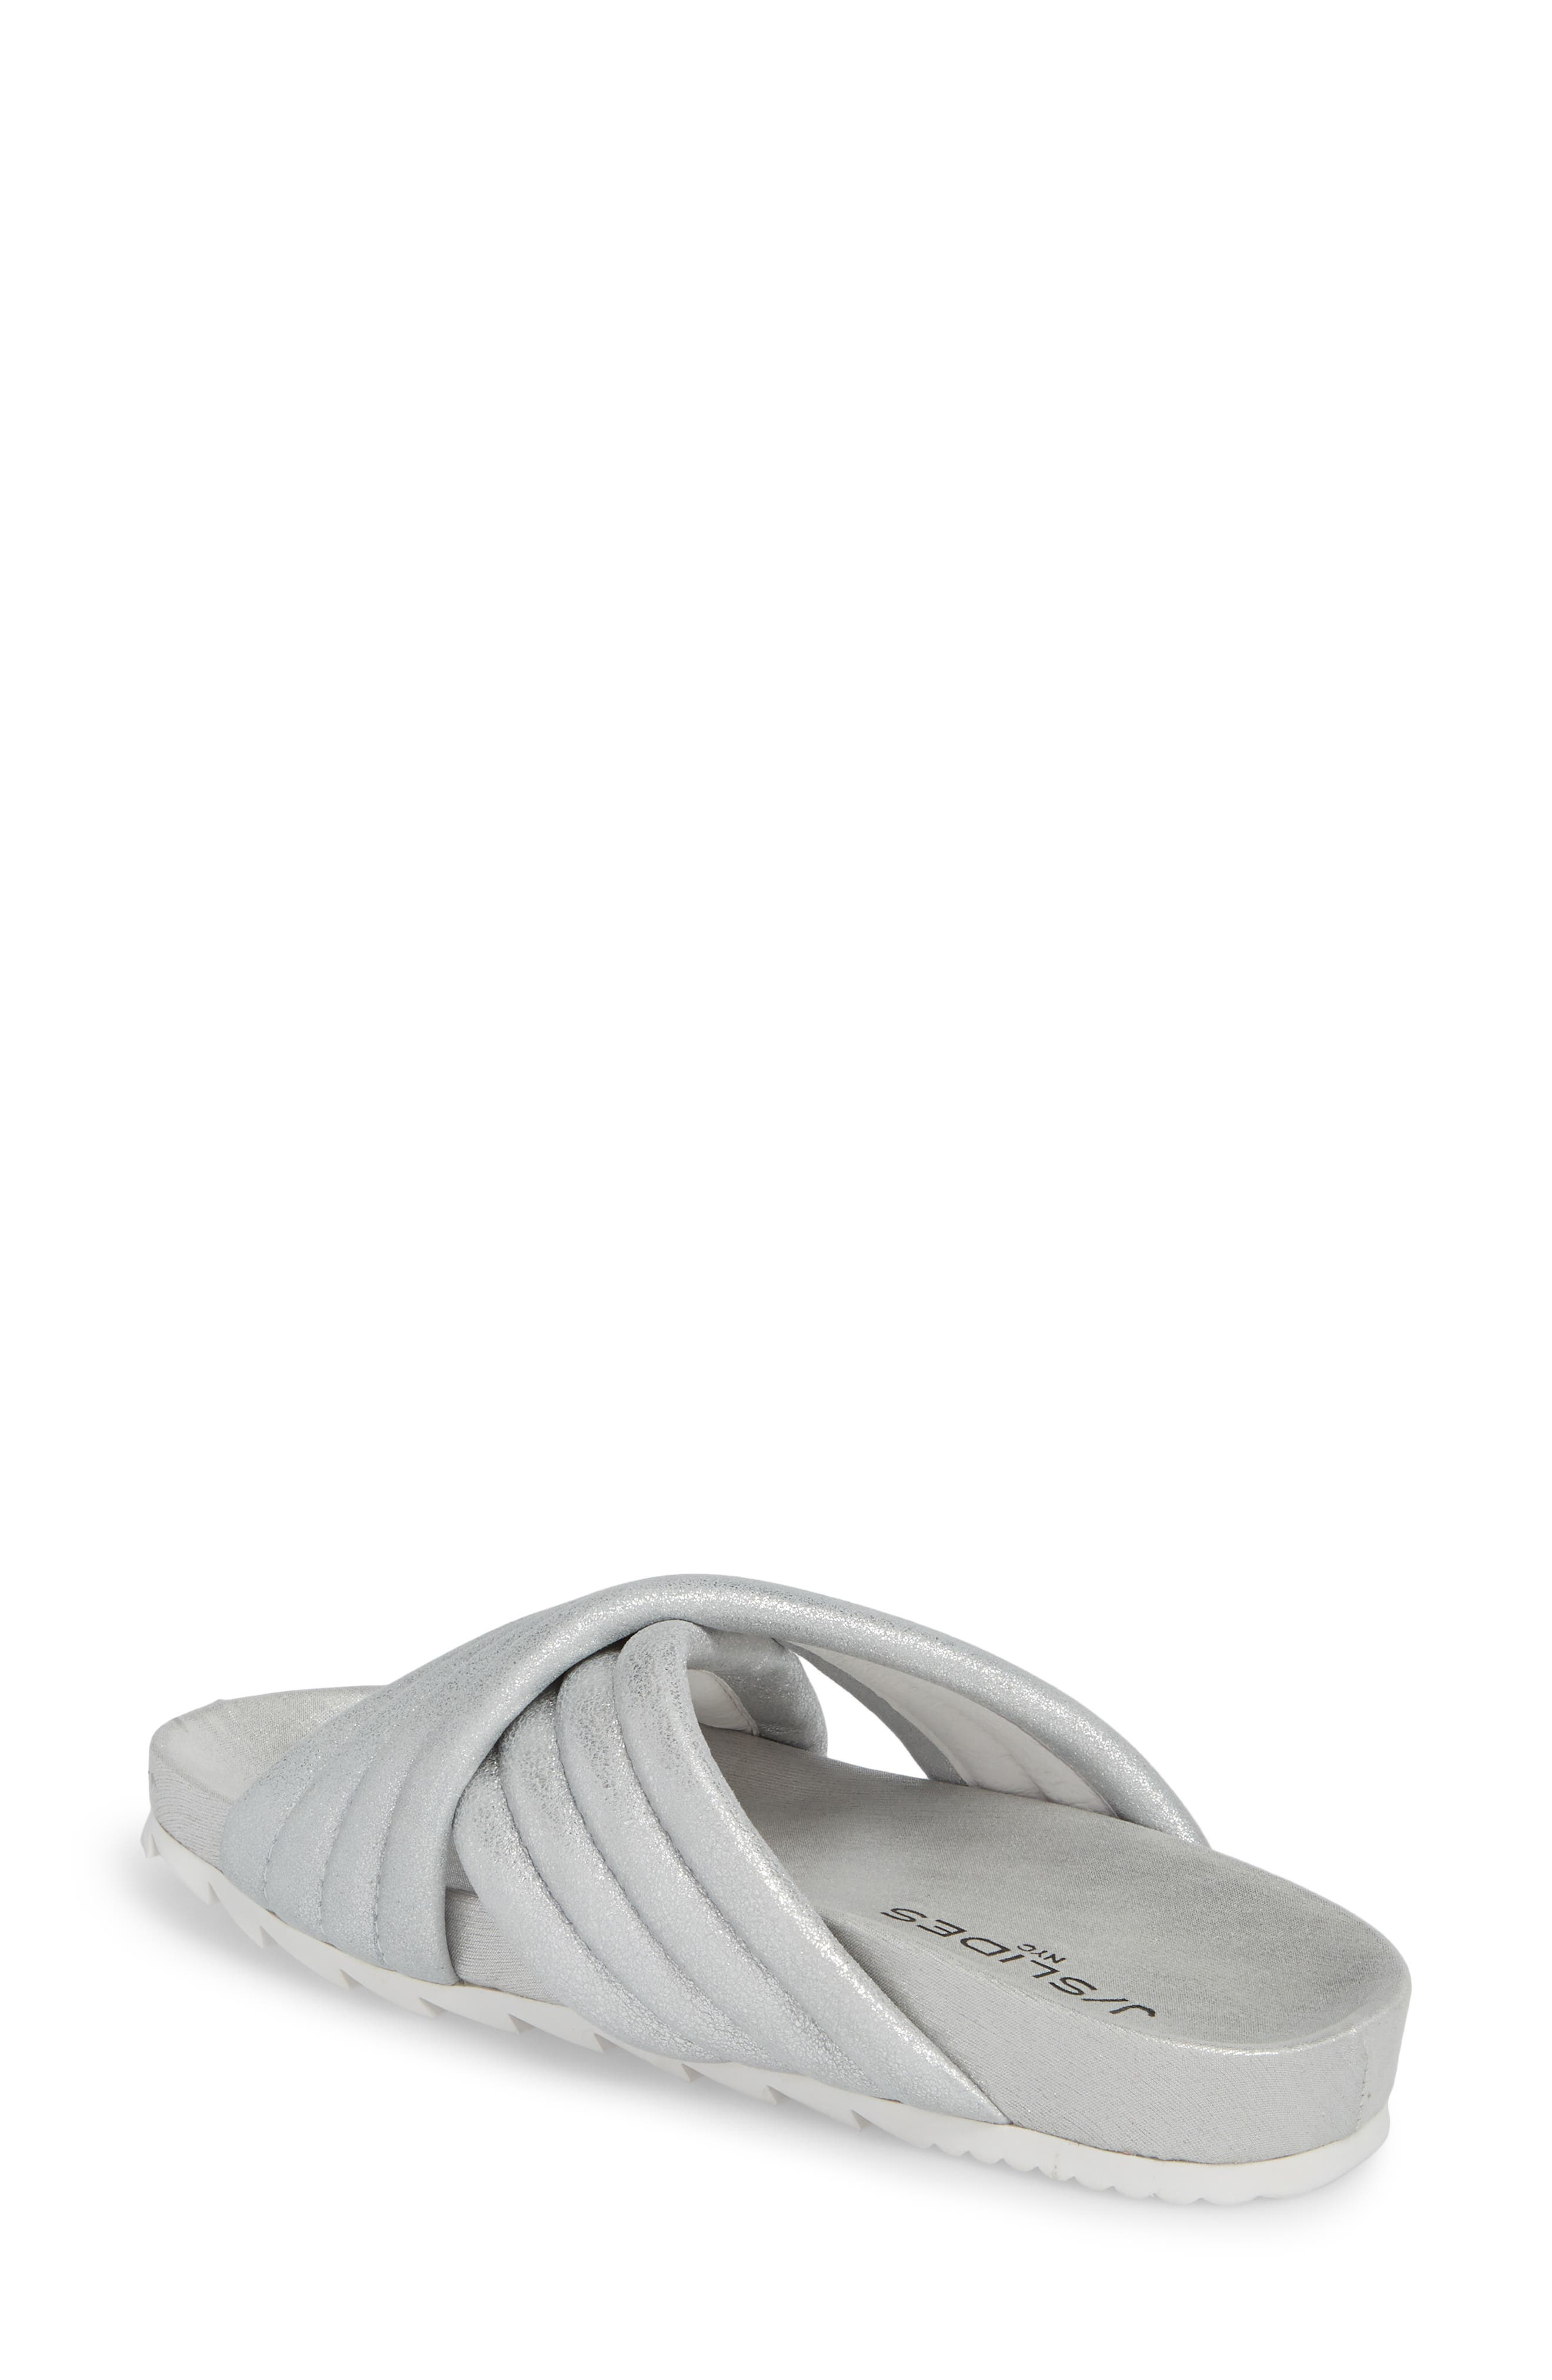 Easy Slide Sandal,                             Alternate thumbnail 2, color,                             SILVER METALLIC LEATHER